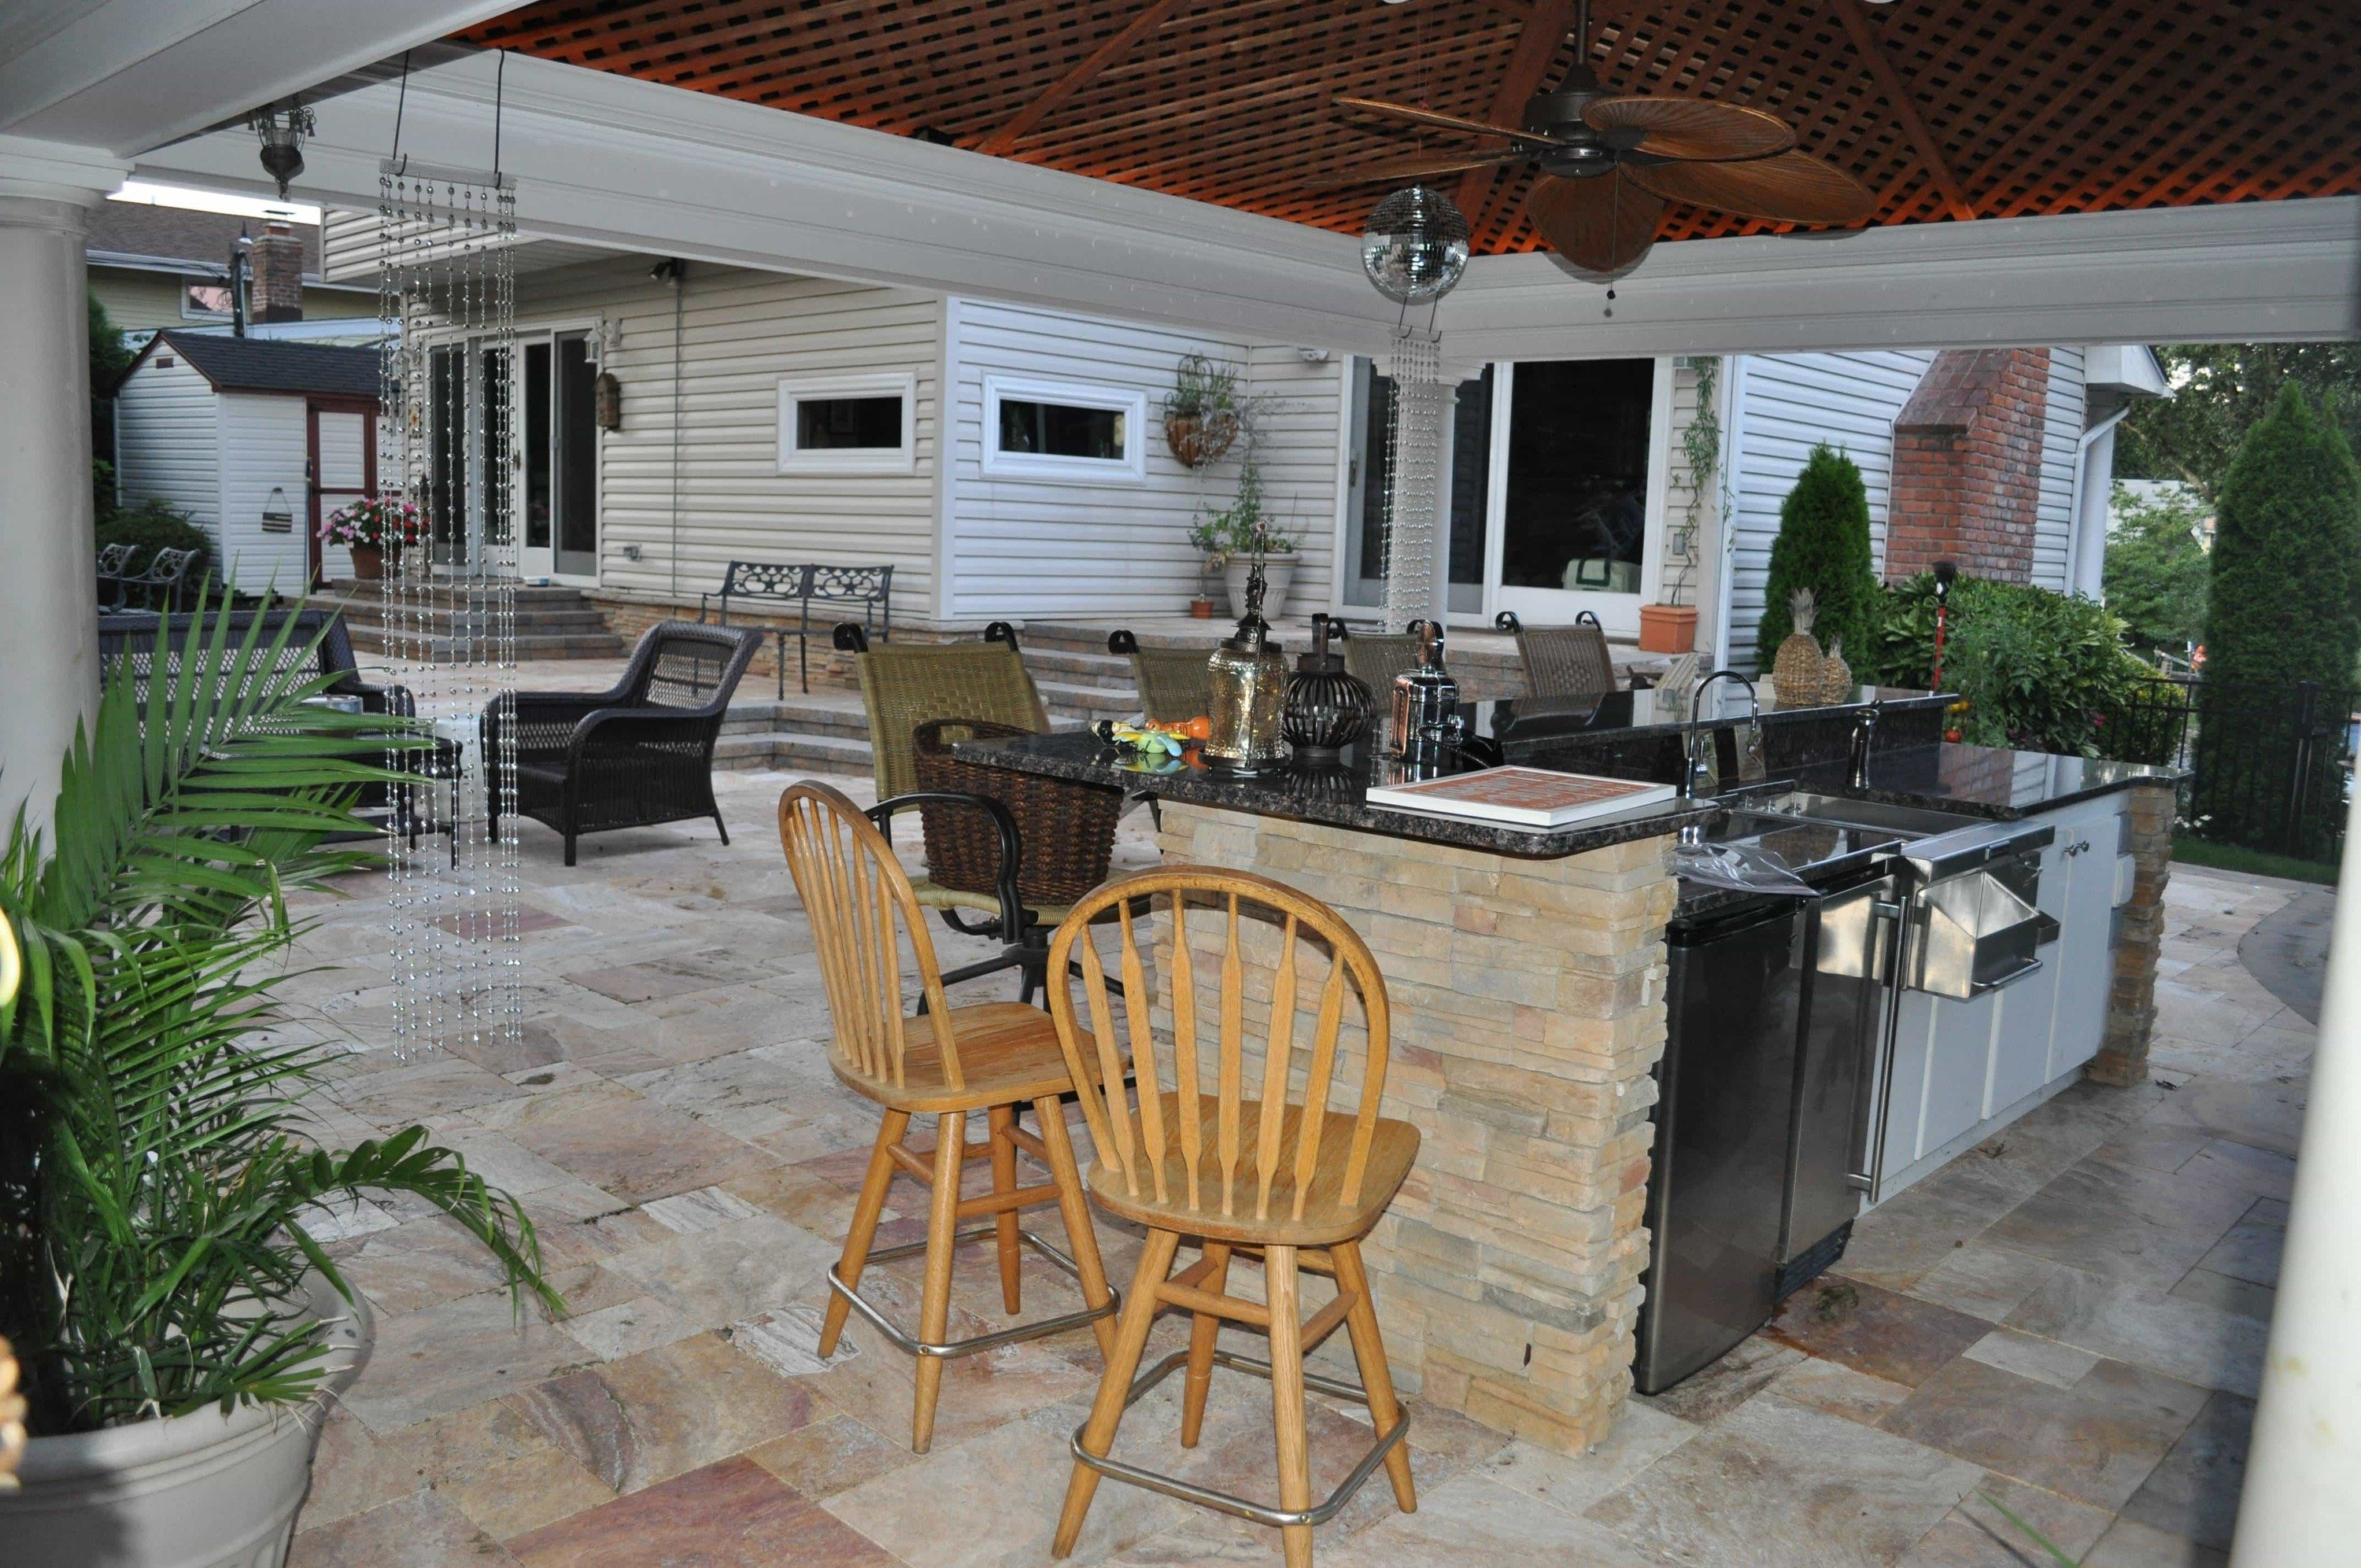 Restaurant Supply Long Island Long Island Patios Patio Designs Patio Pavers Patio